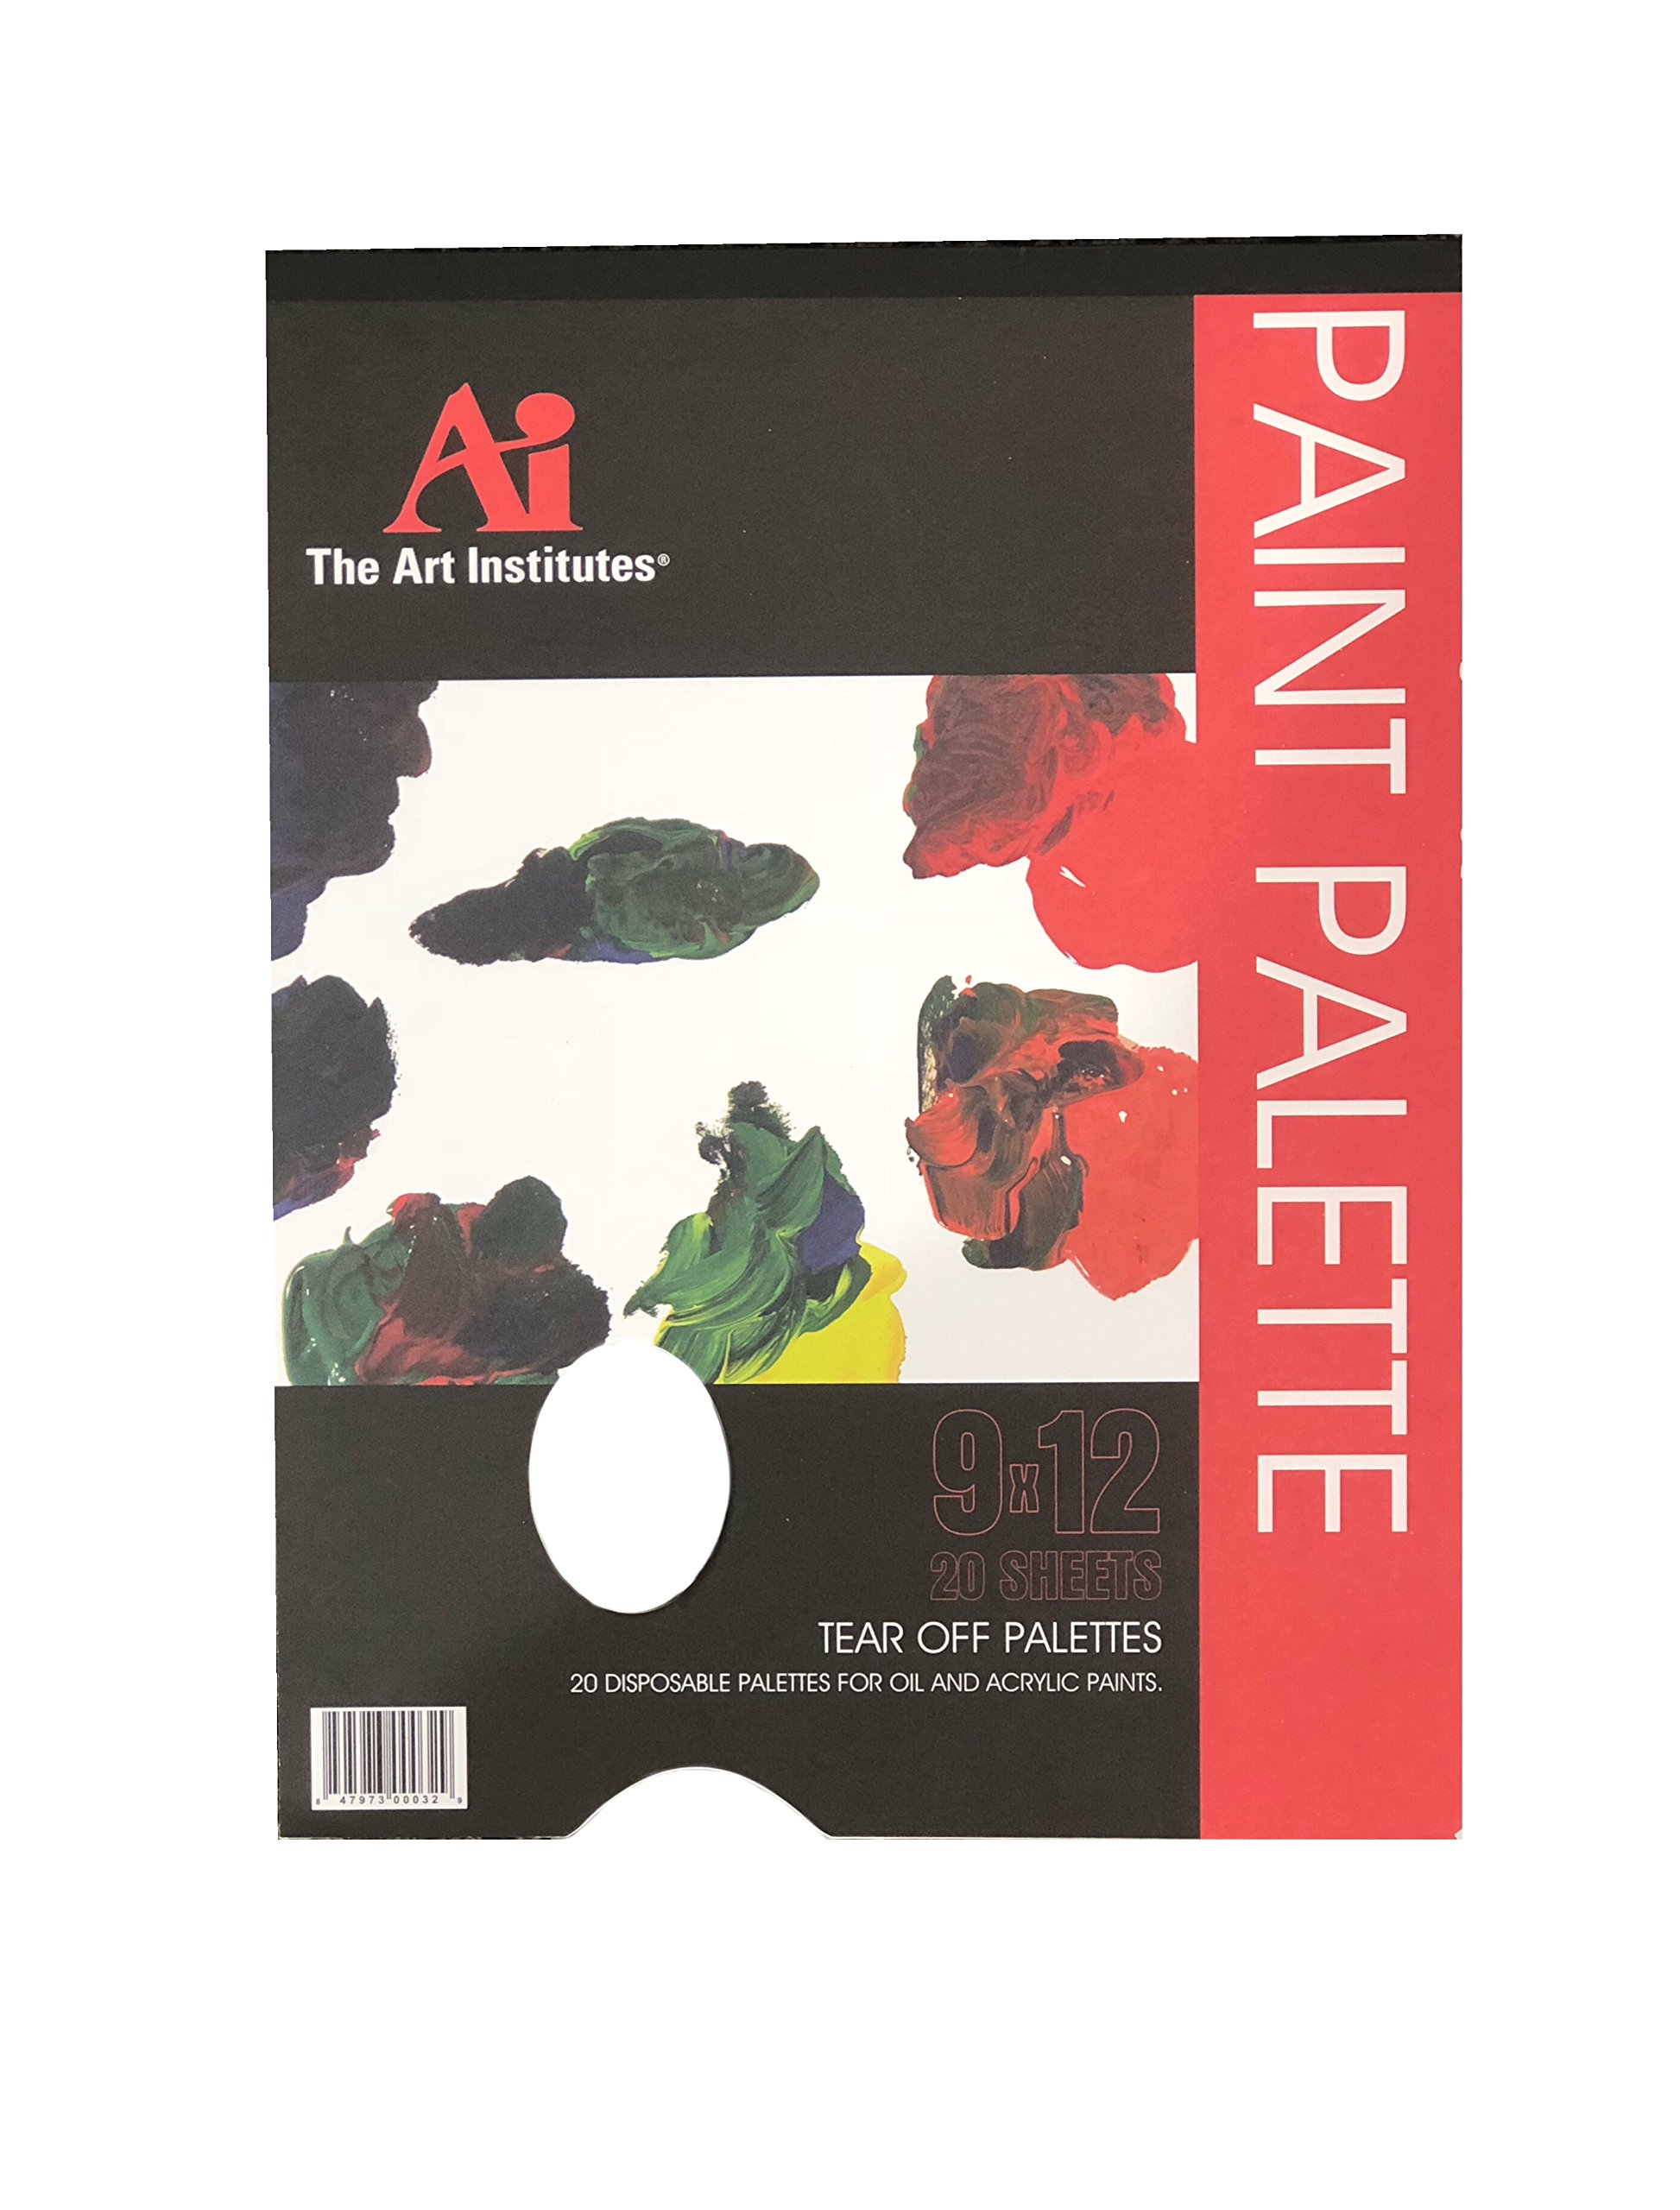 The Art Institute Disposable 48 Paint Pallete Pads - 960 Sheets by The Art Institute